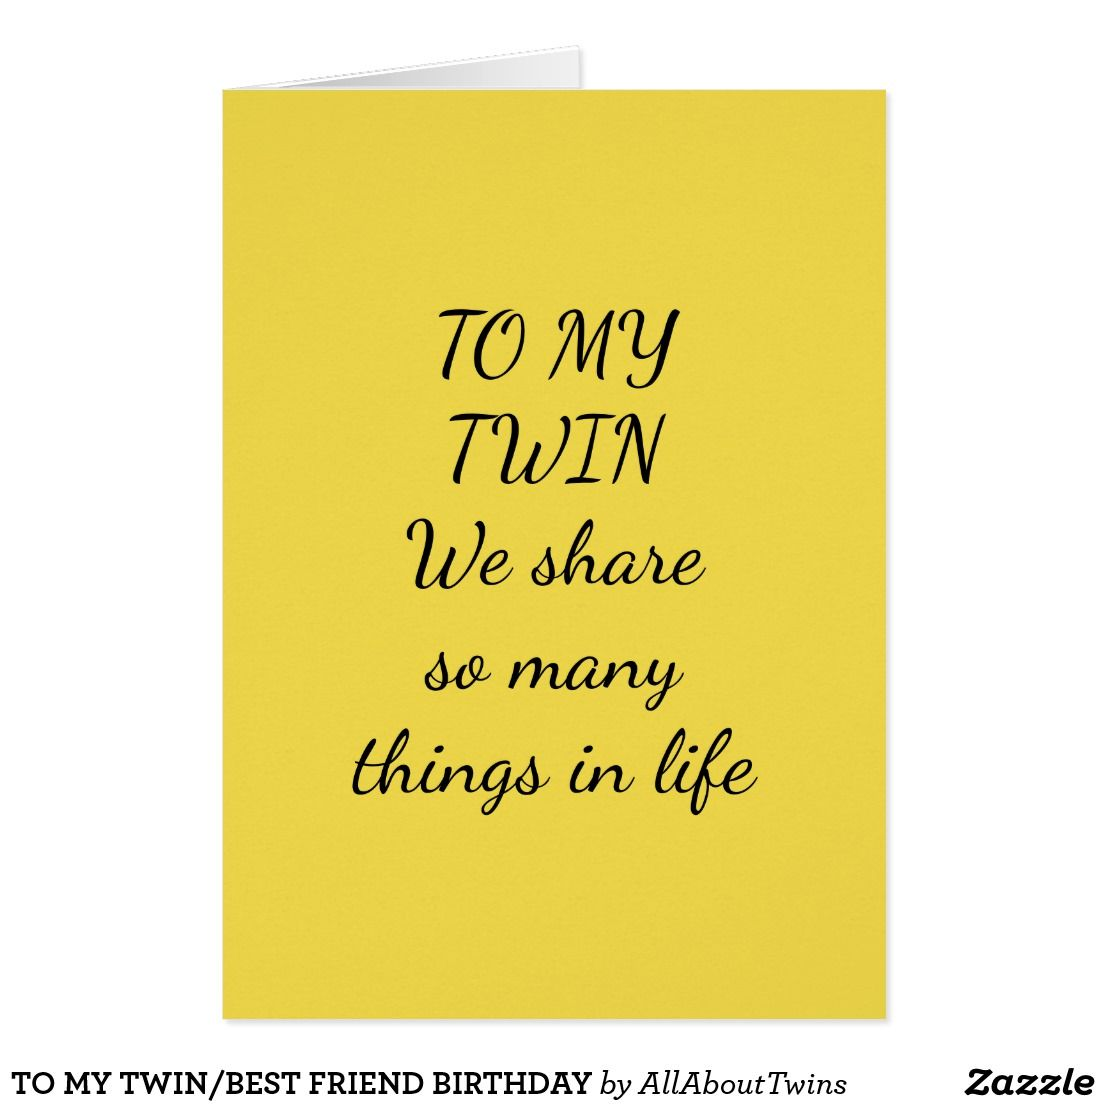 SEND A SPECIAL BIRTHDAY CARD TO YOUR TWIN SISTER OR BROTHER – Twin Sister Birthday Card